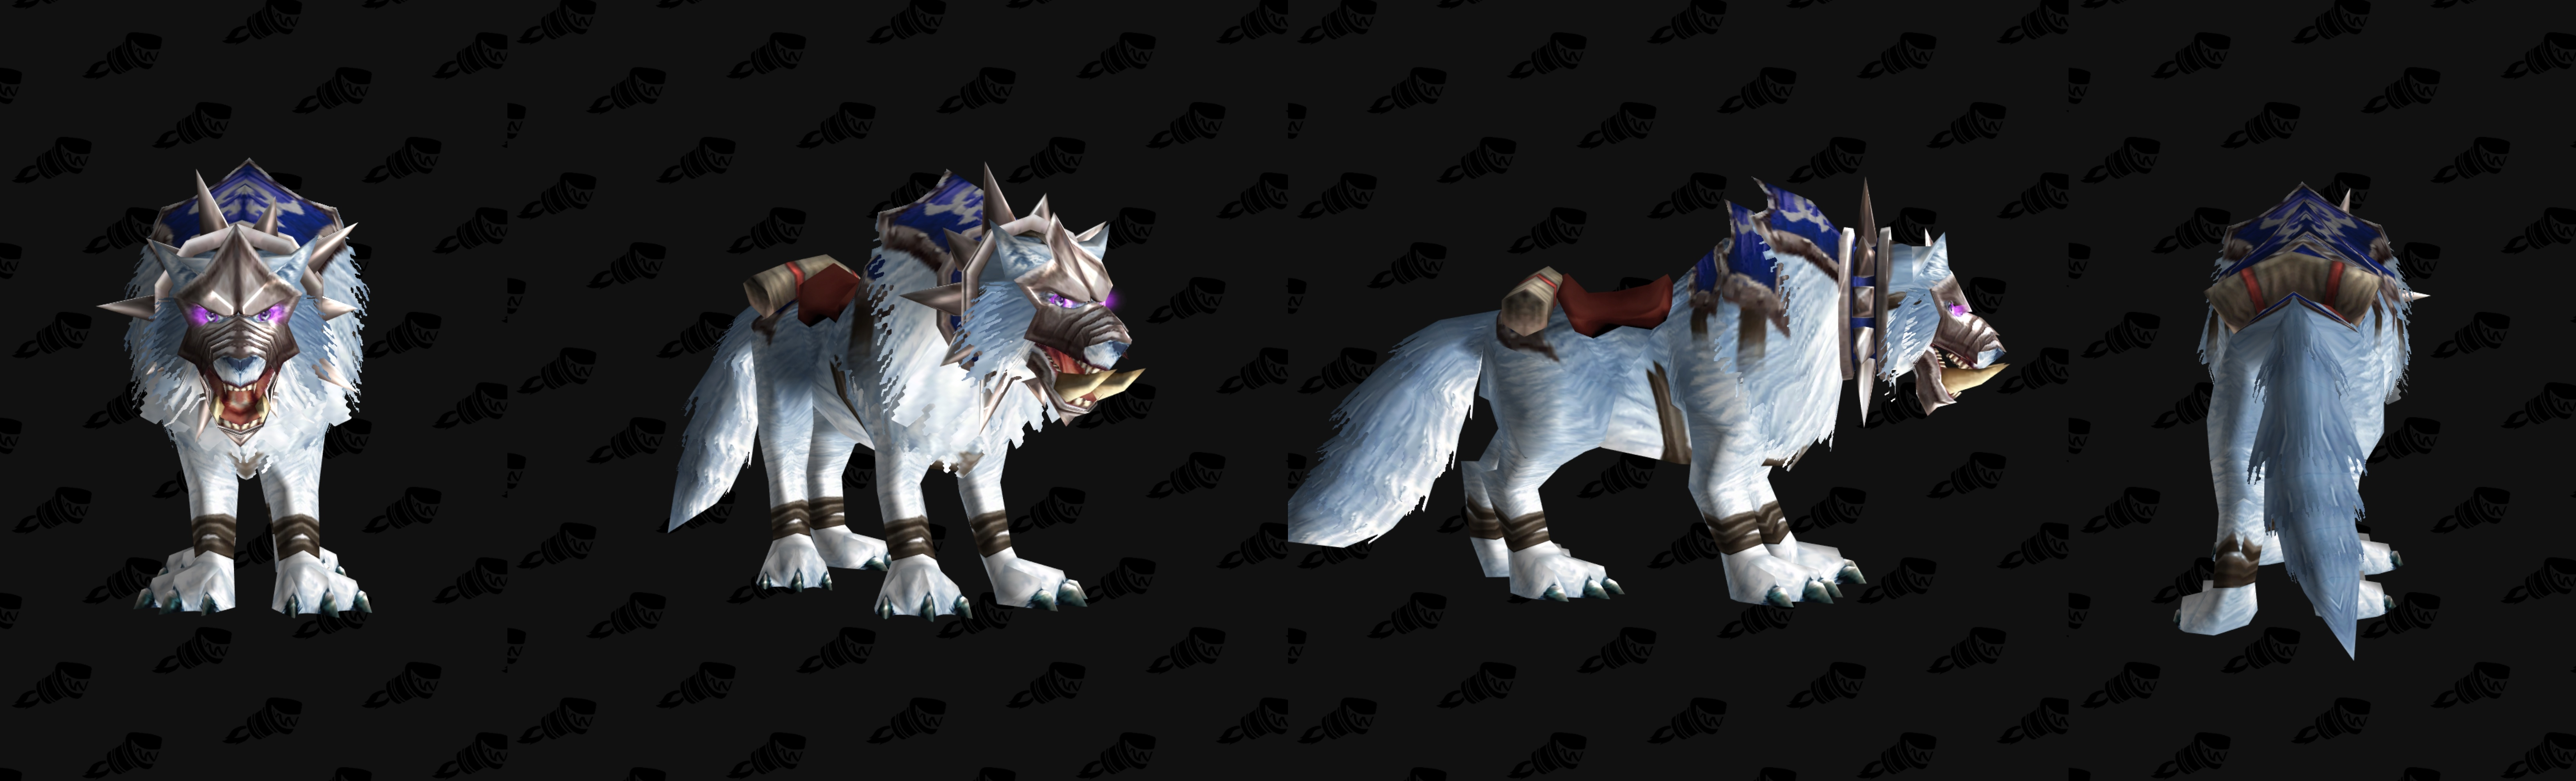 Frostwolf Snarler - 15th Anniversary Mount Preview - Wowhead